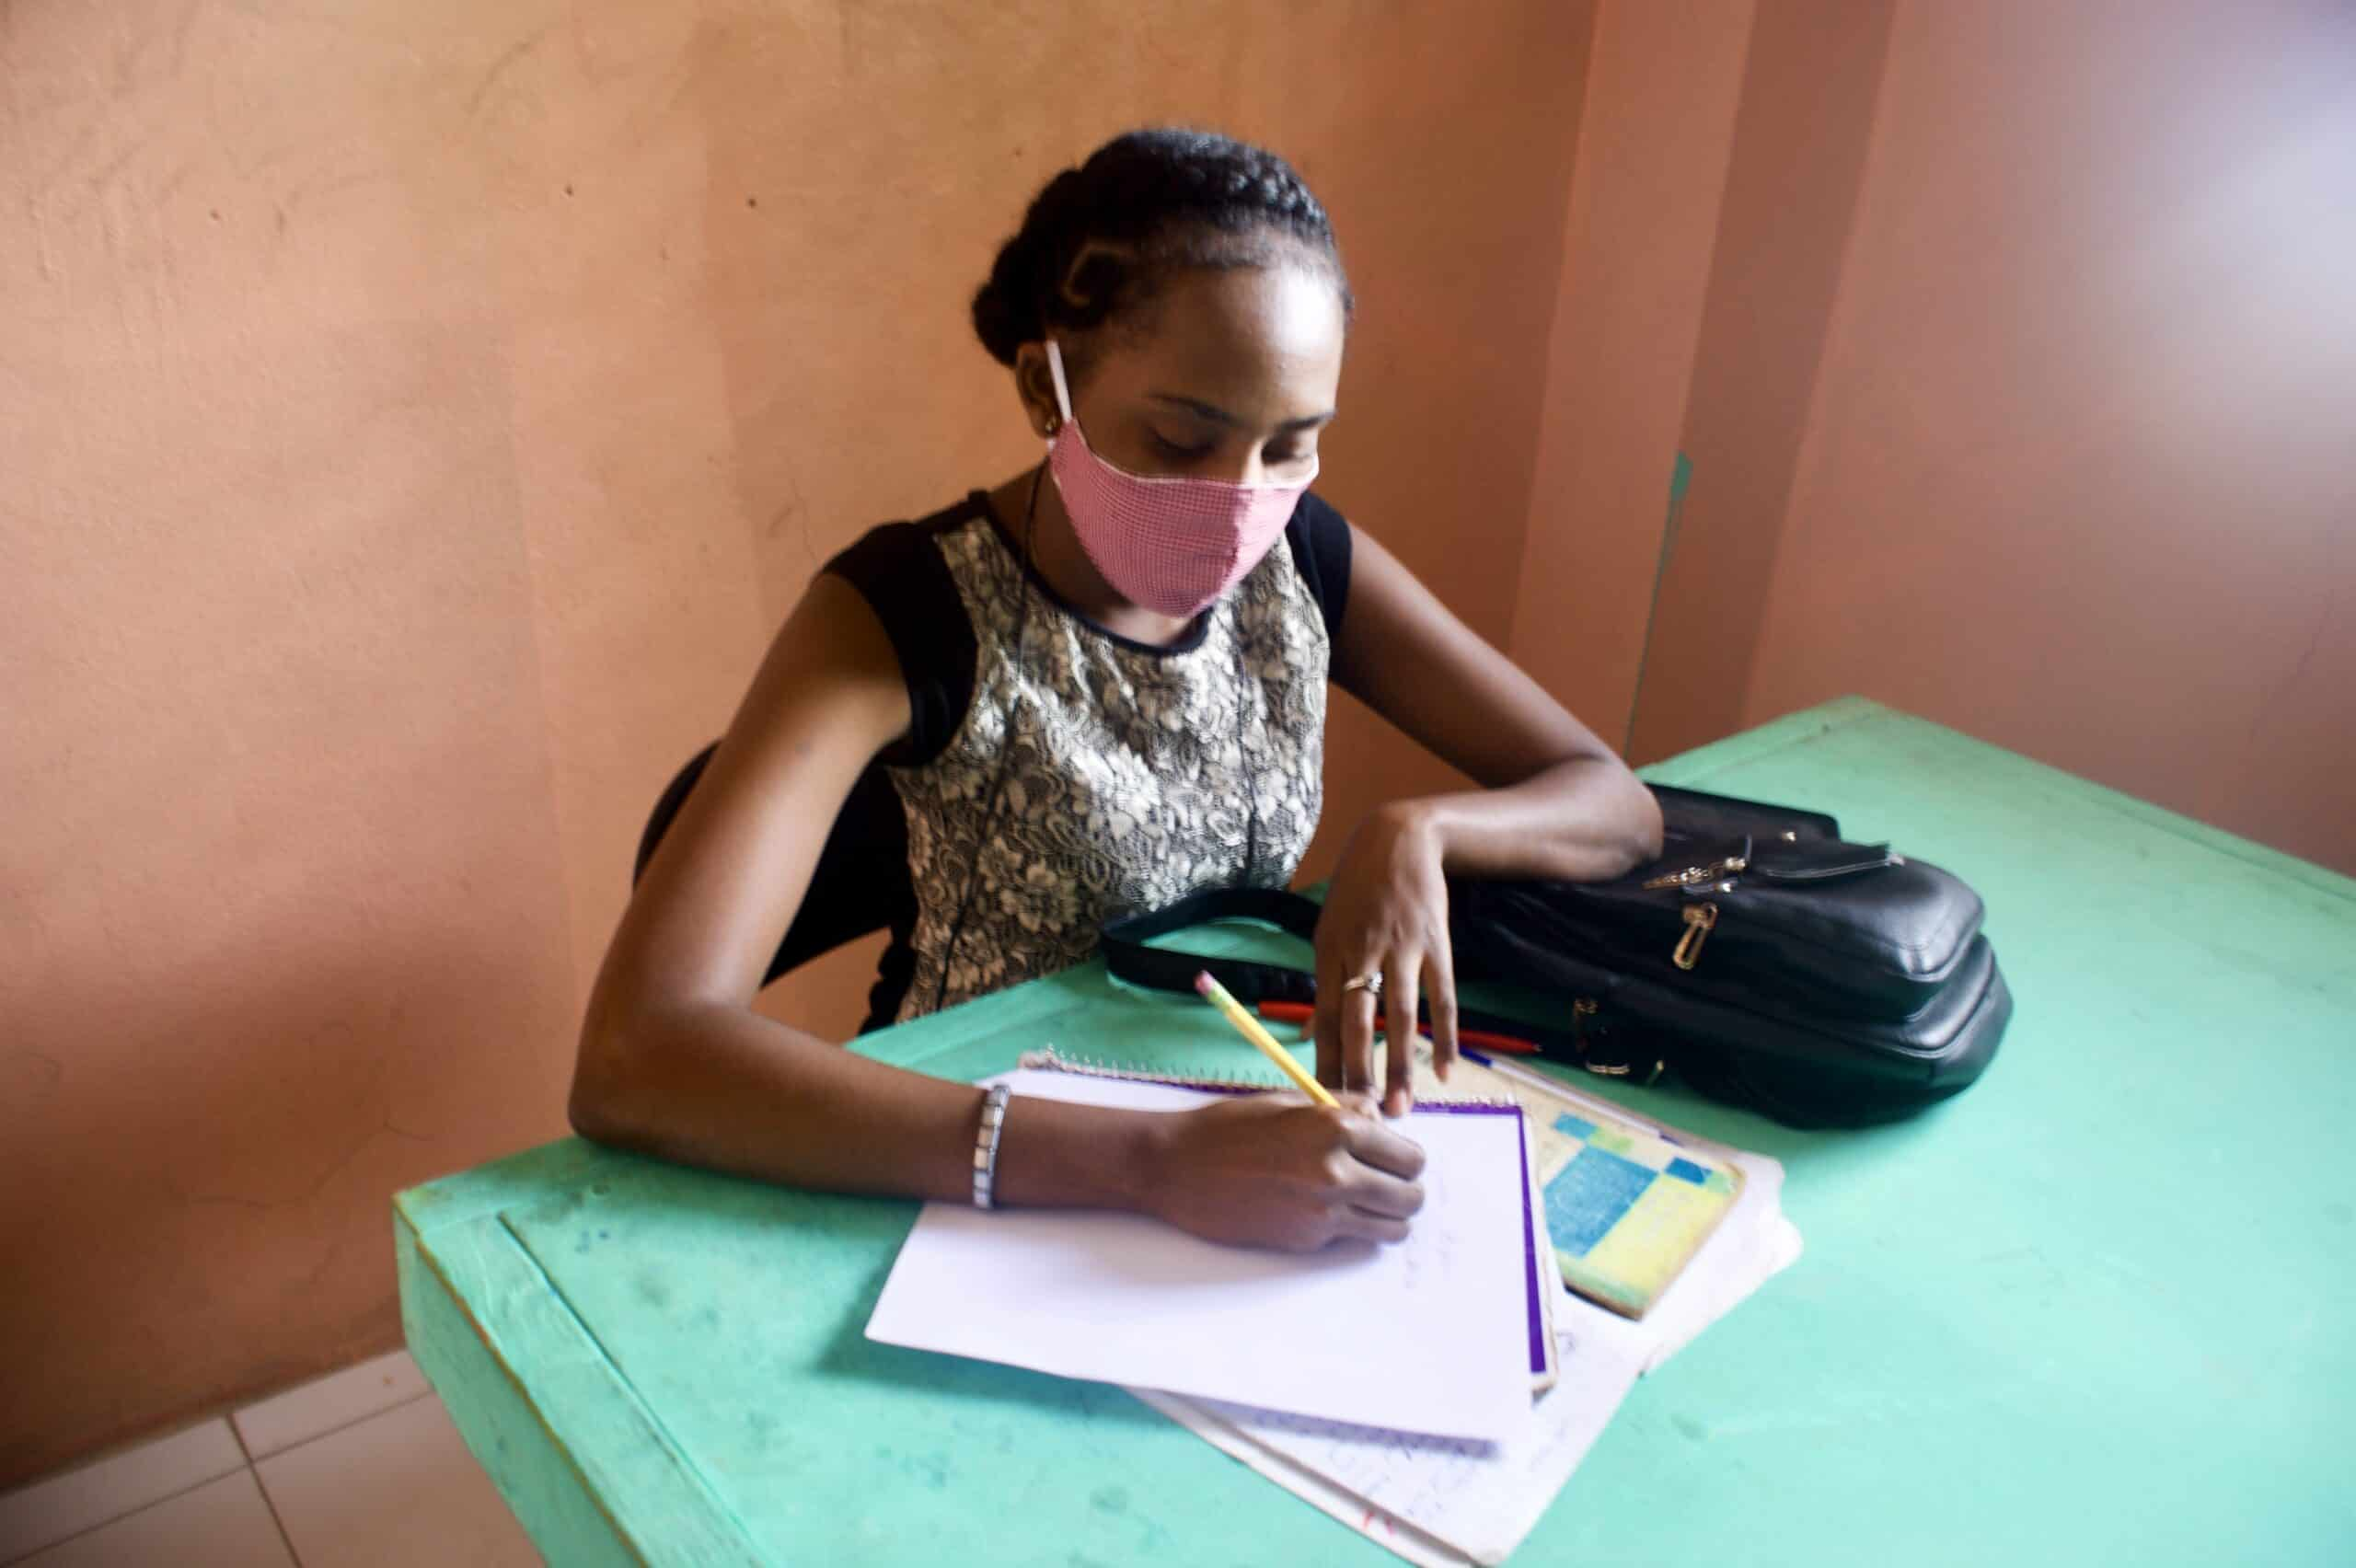 An empowered student with a mask works at an old, wooden, green desk with pencil and paper